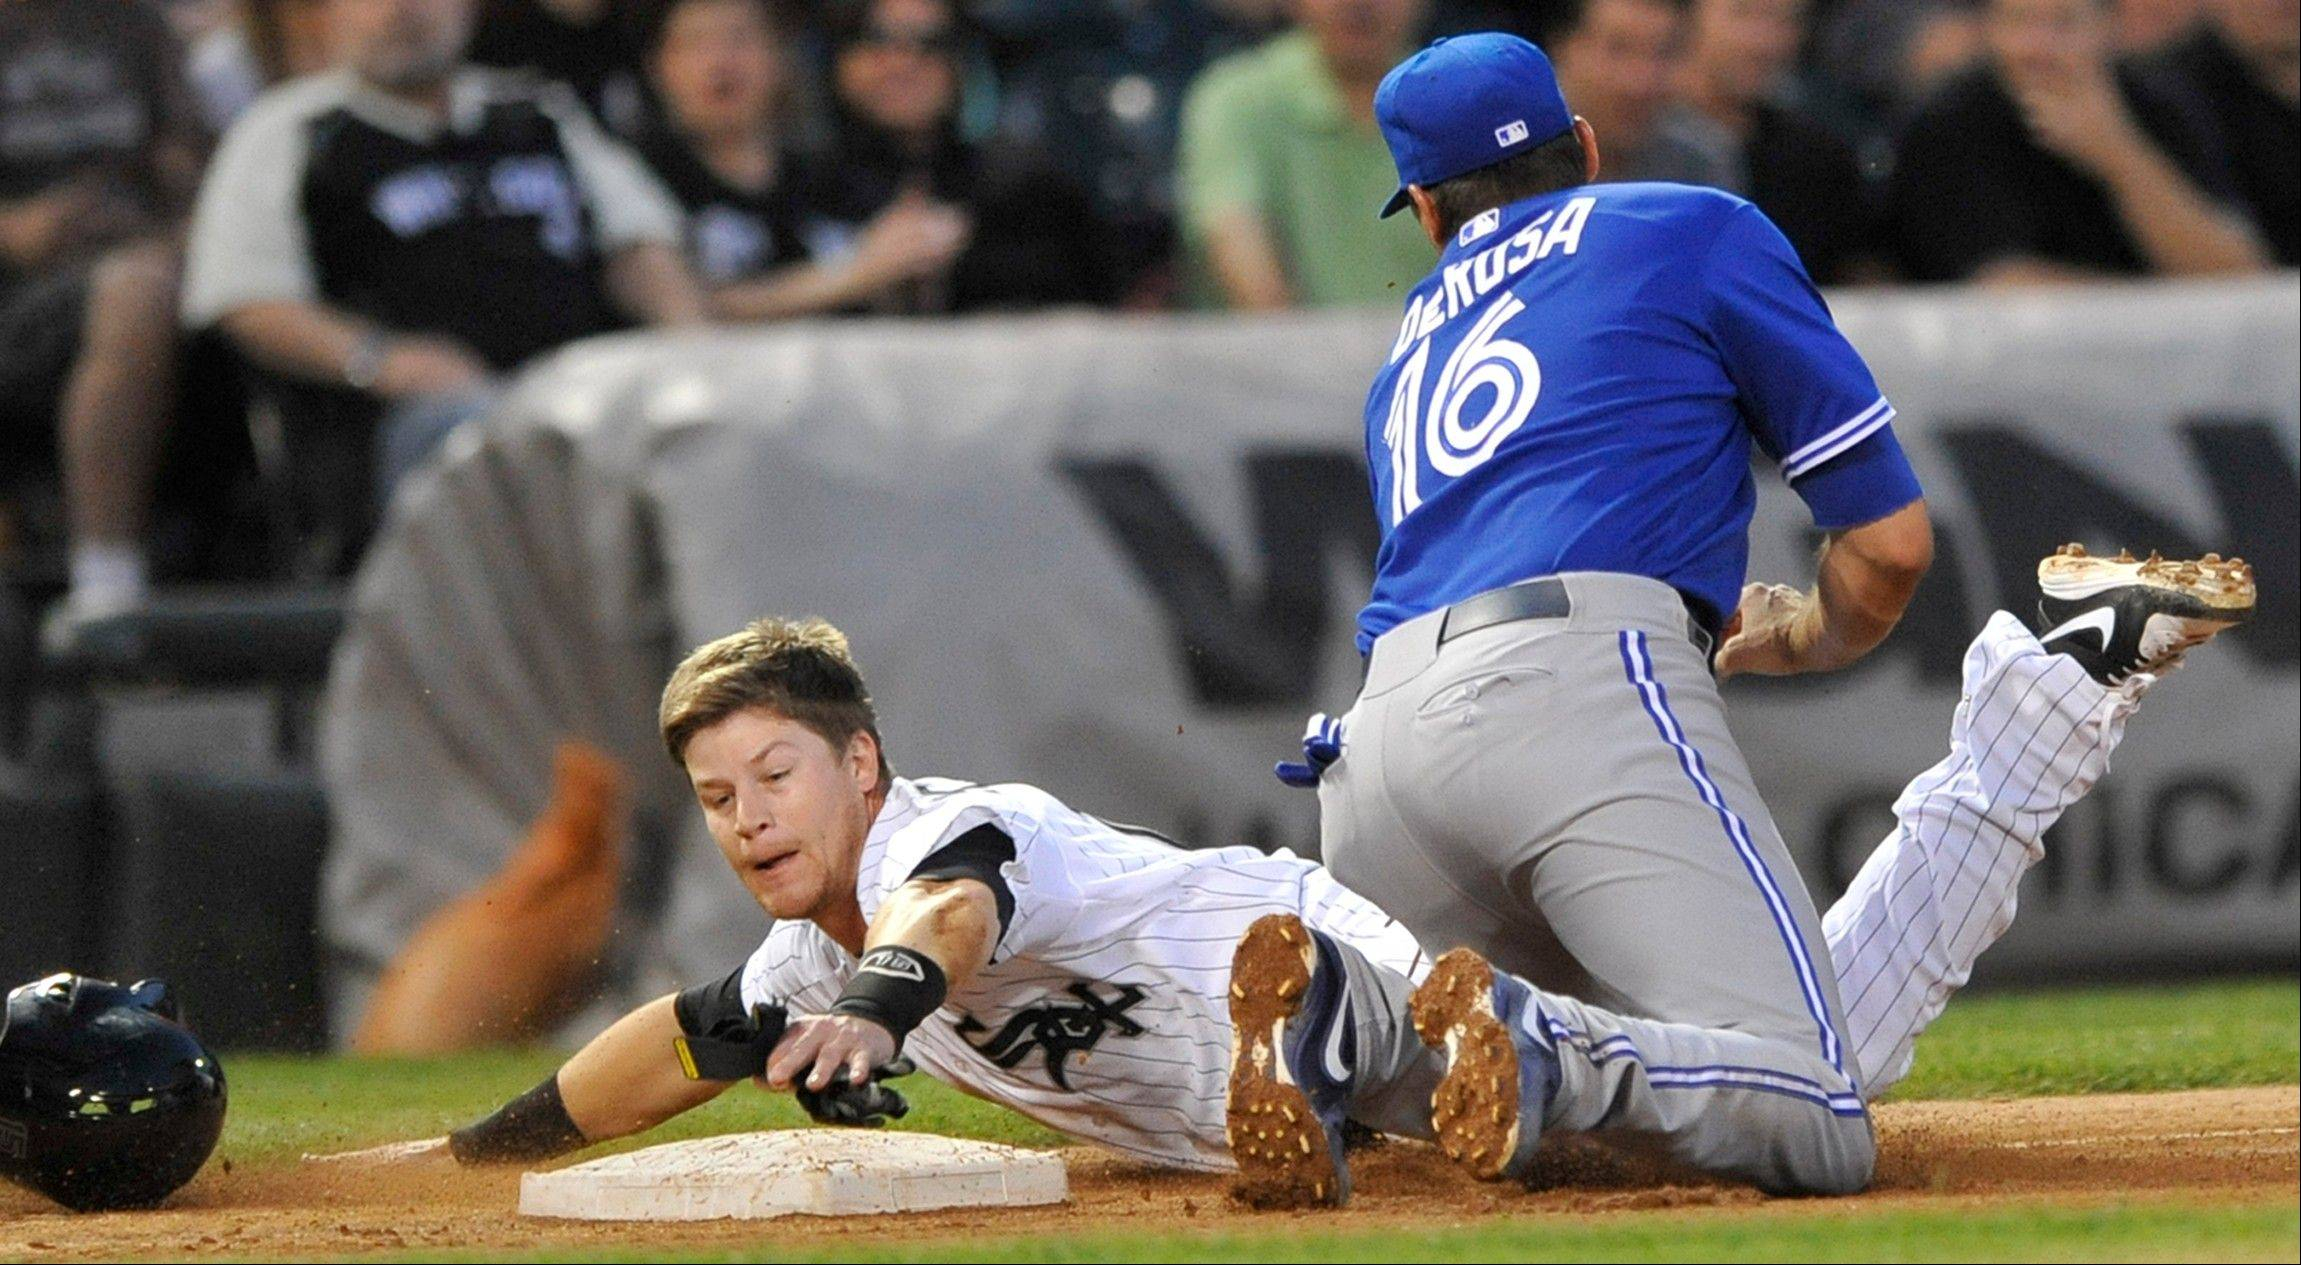 Gordon Beckham is tagged out at third base by Toronto Blue Jays third baseman Mark DeRosa (16), after Tyler Flowers singled during the fourth inning of a baseball game in Chicago, Tuesday, June 11, 2013.